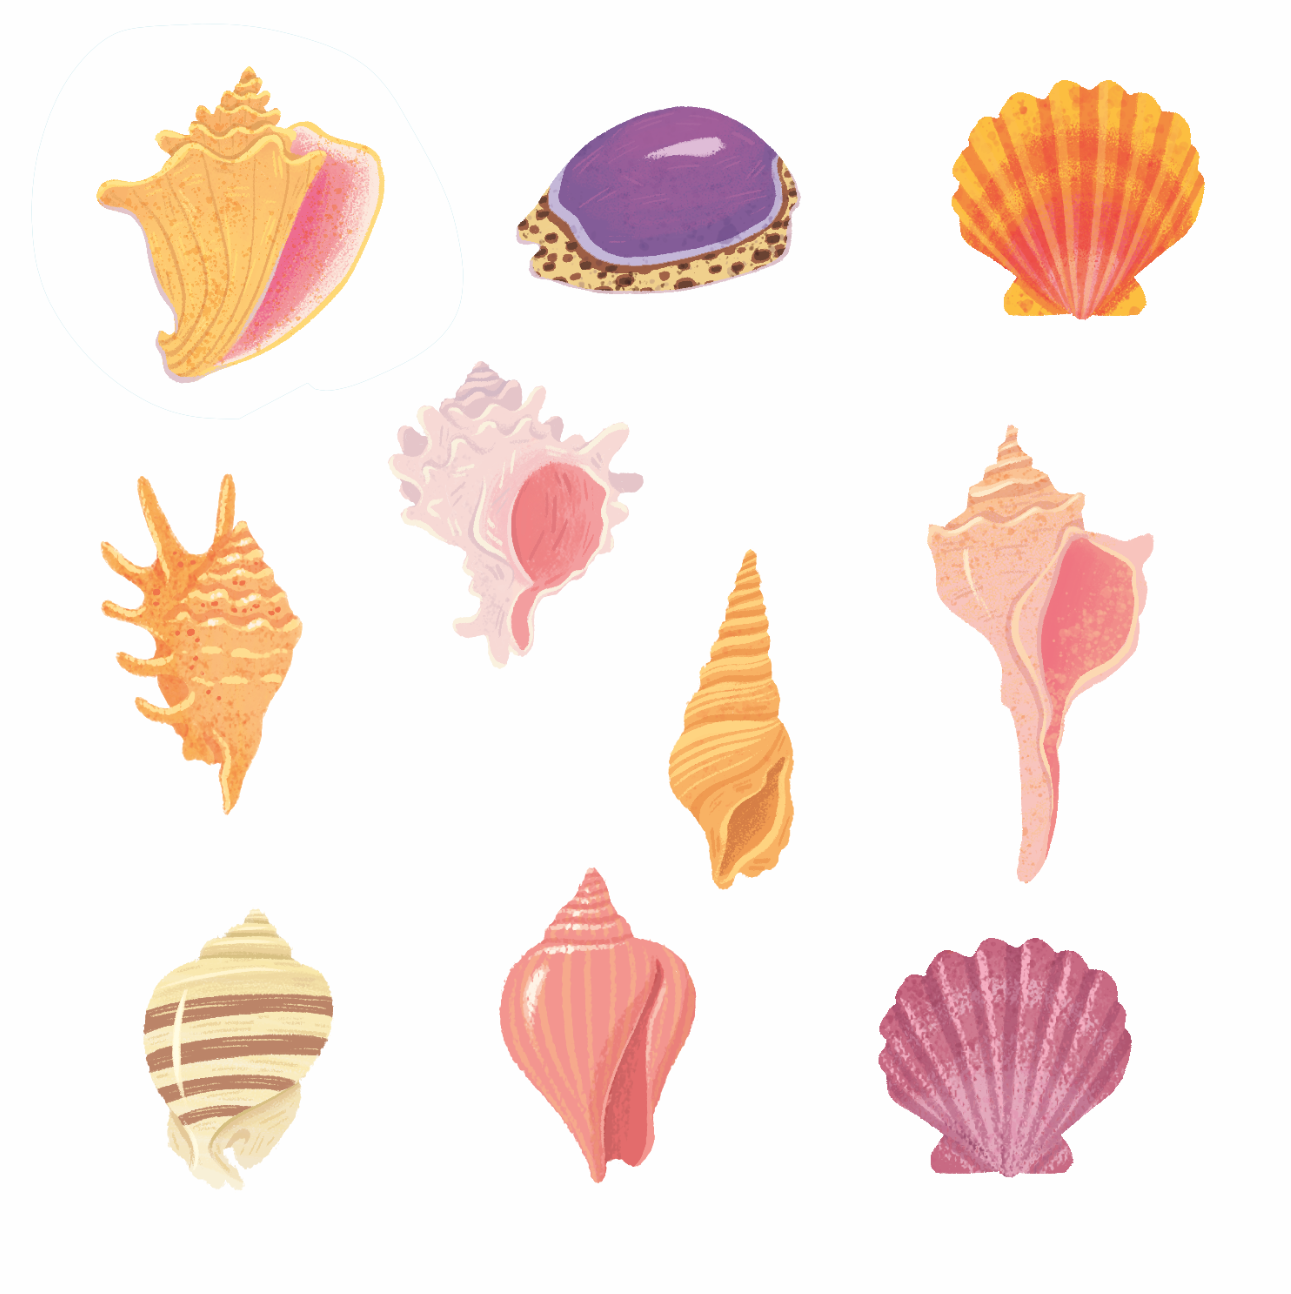 Jamie Tablason Illustration different types of shells